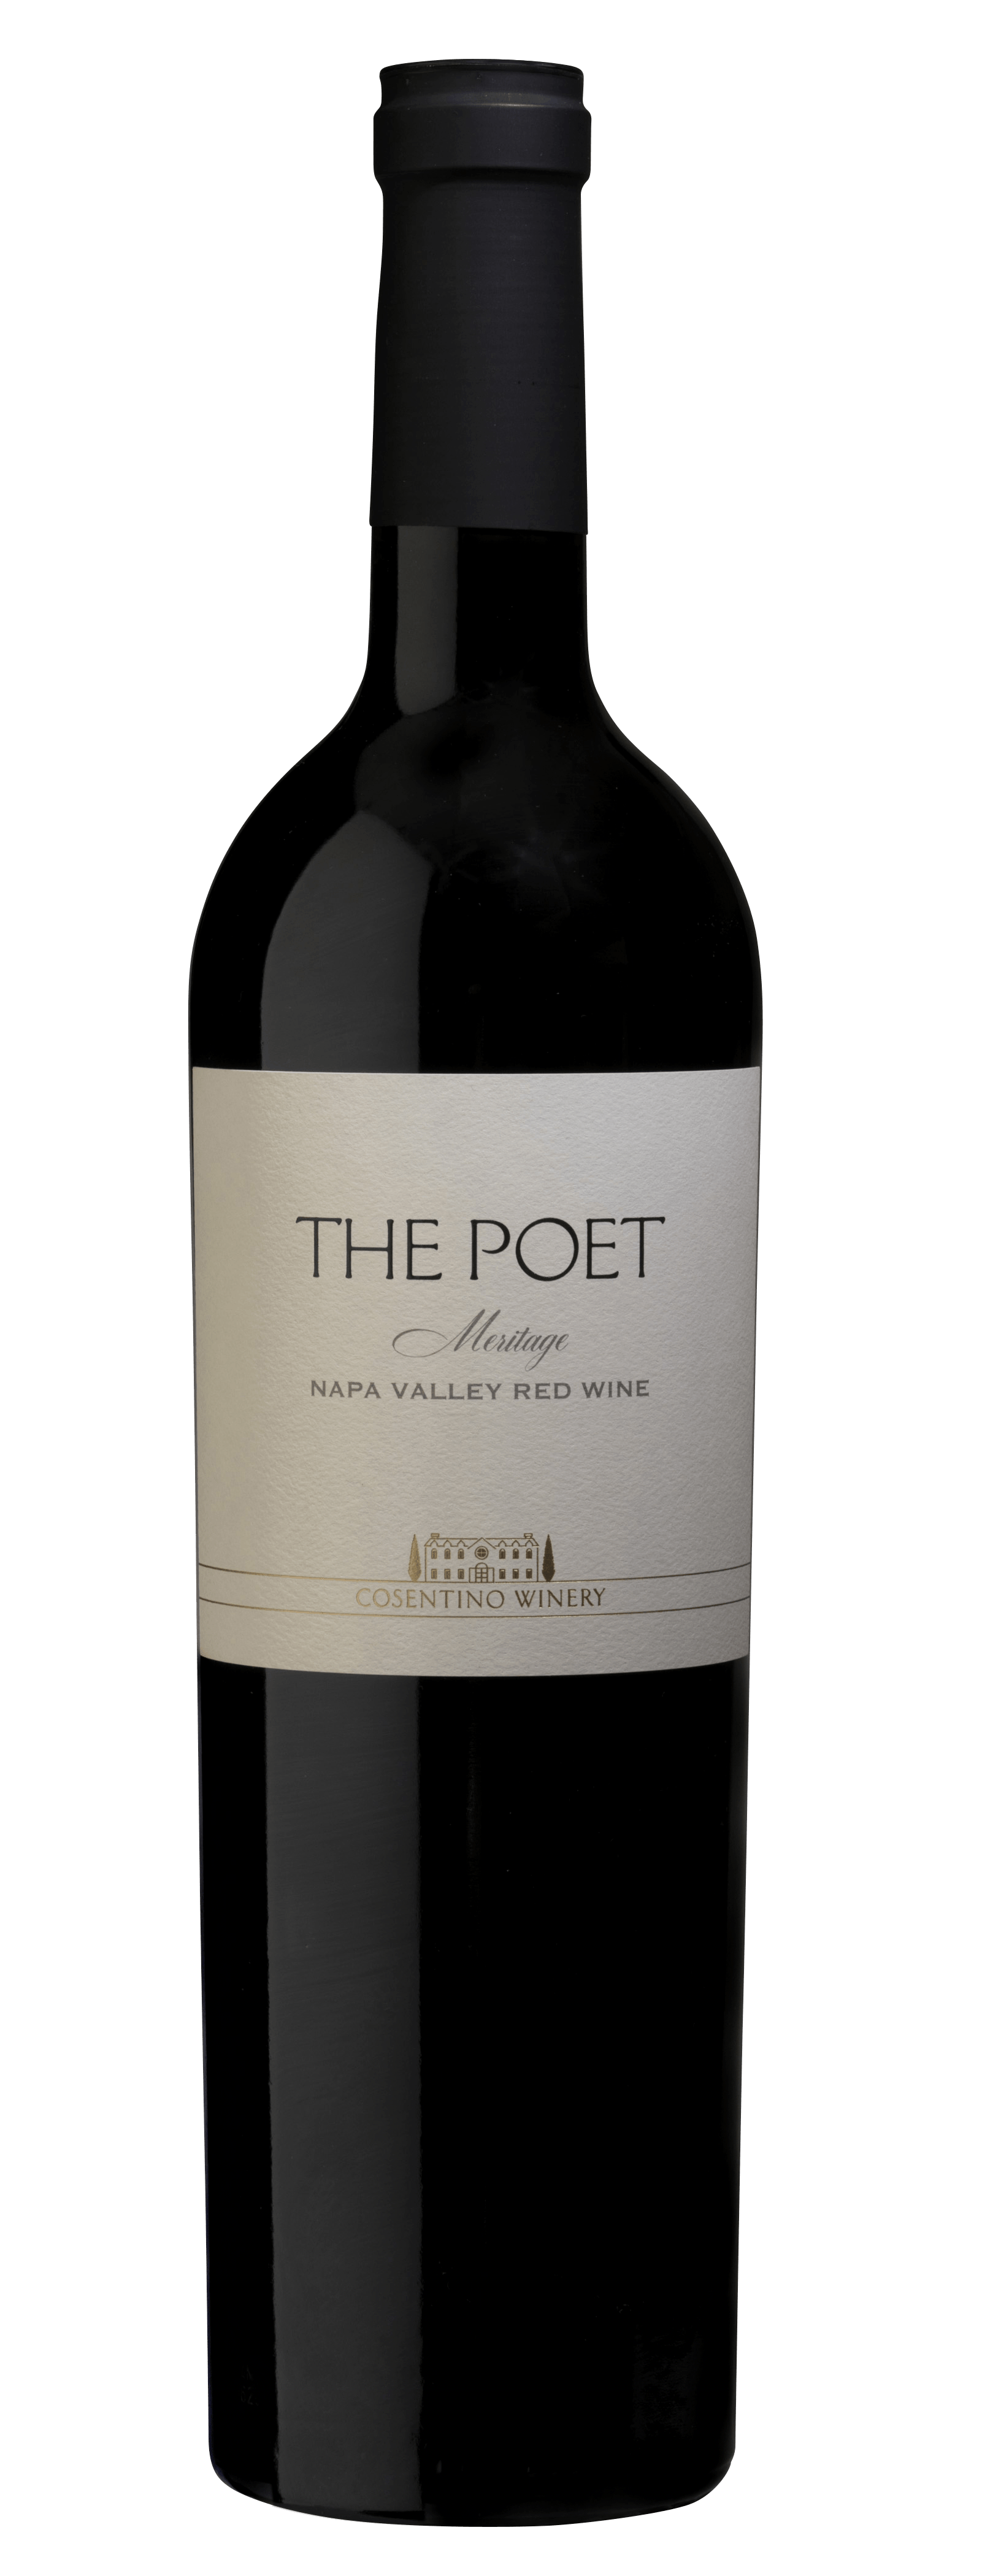 2016 Cosentino Winery THE Poet, Napa Valley, 750ml